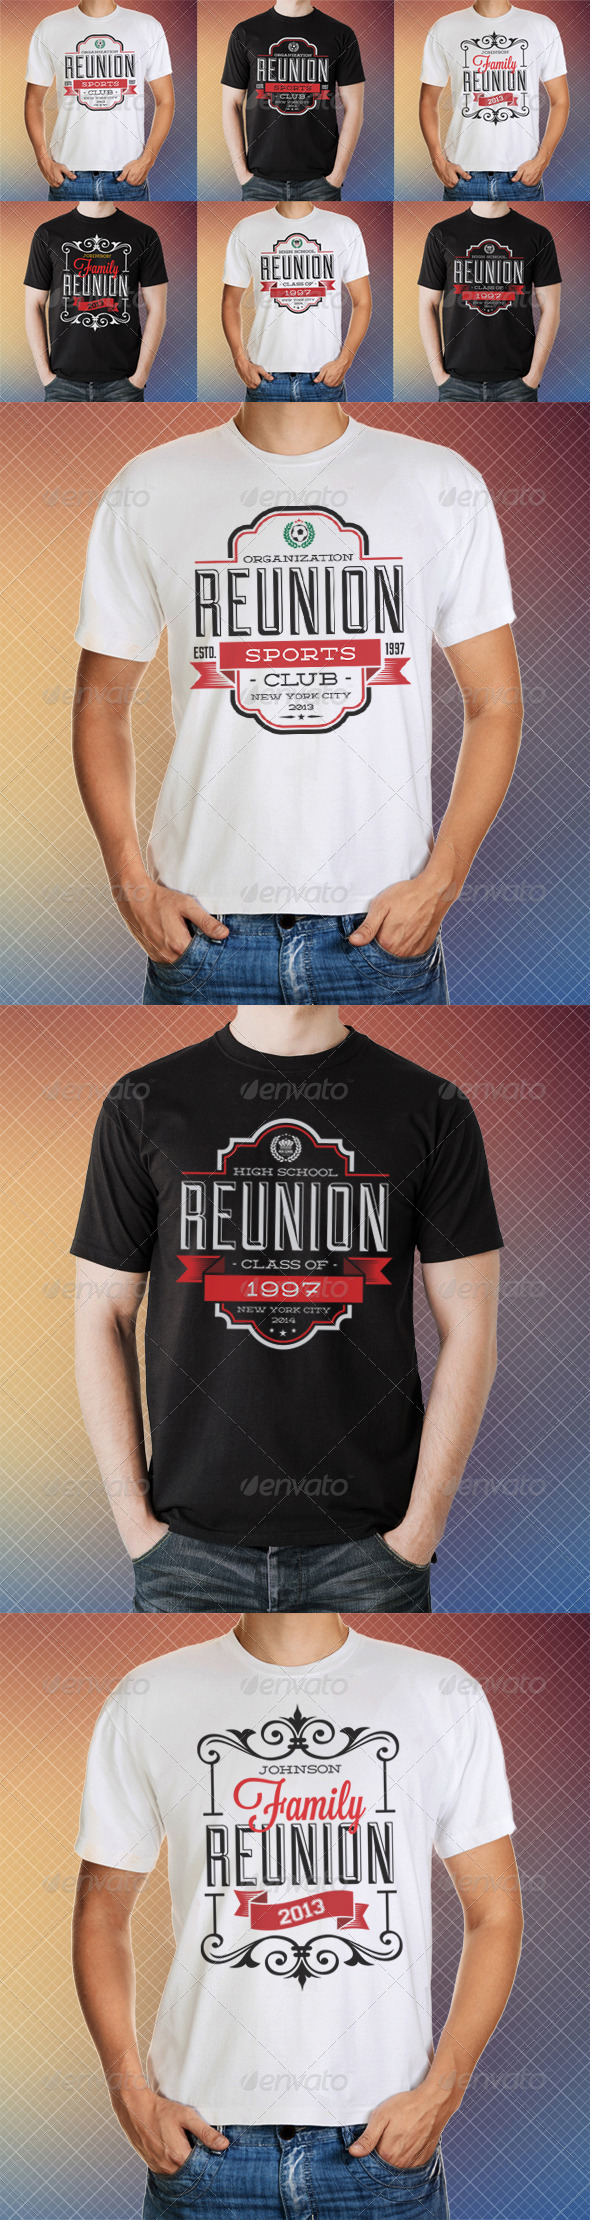 GraphicRiver Reunion T-Shirt Templates 8565065